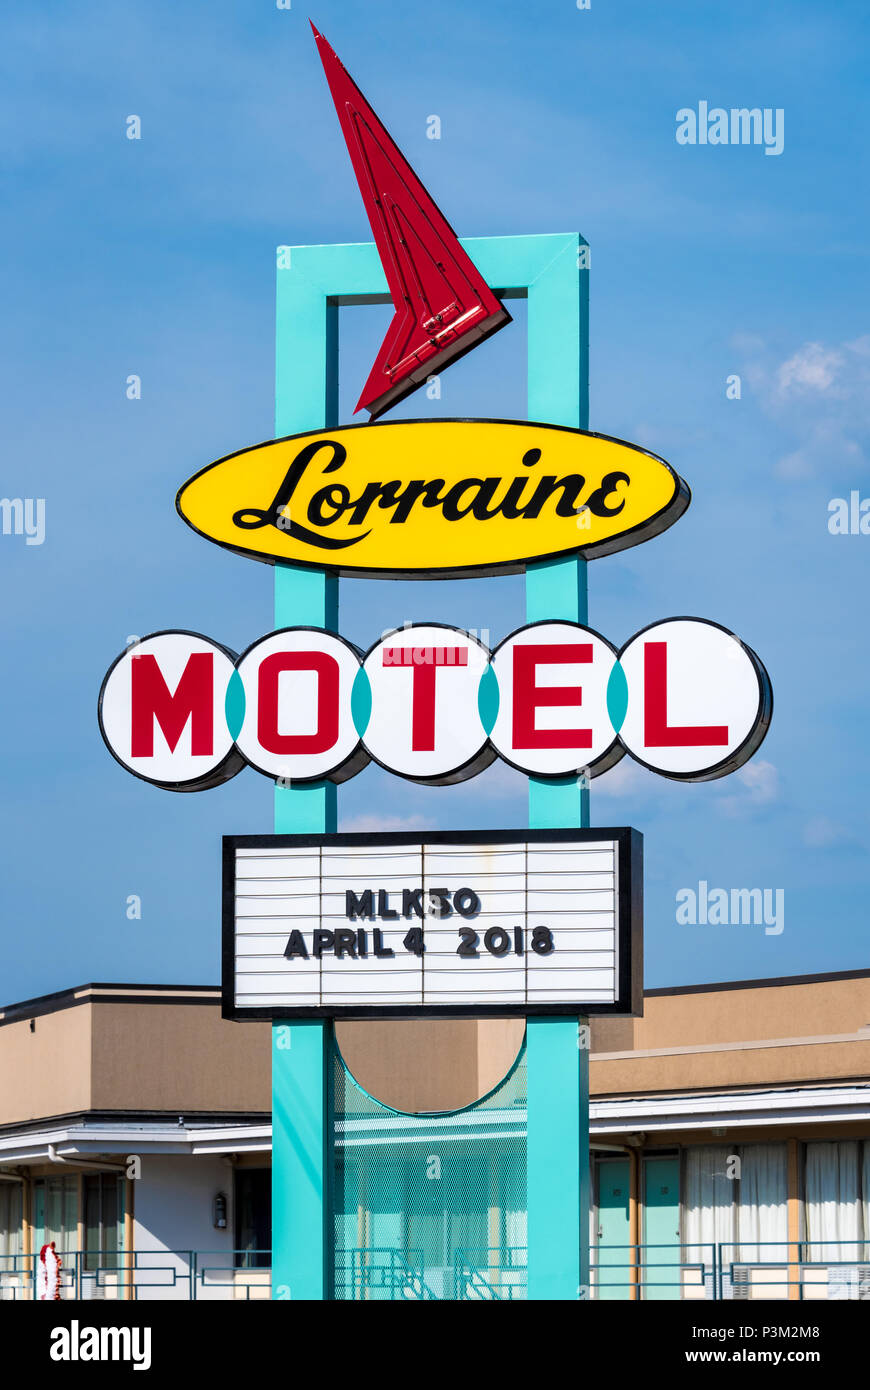 Lorraine Motel in Memphis, Tennessee, where Martin Luther King, Jr. was assassinated on April 4, 1968. (USA) Stock Photo